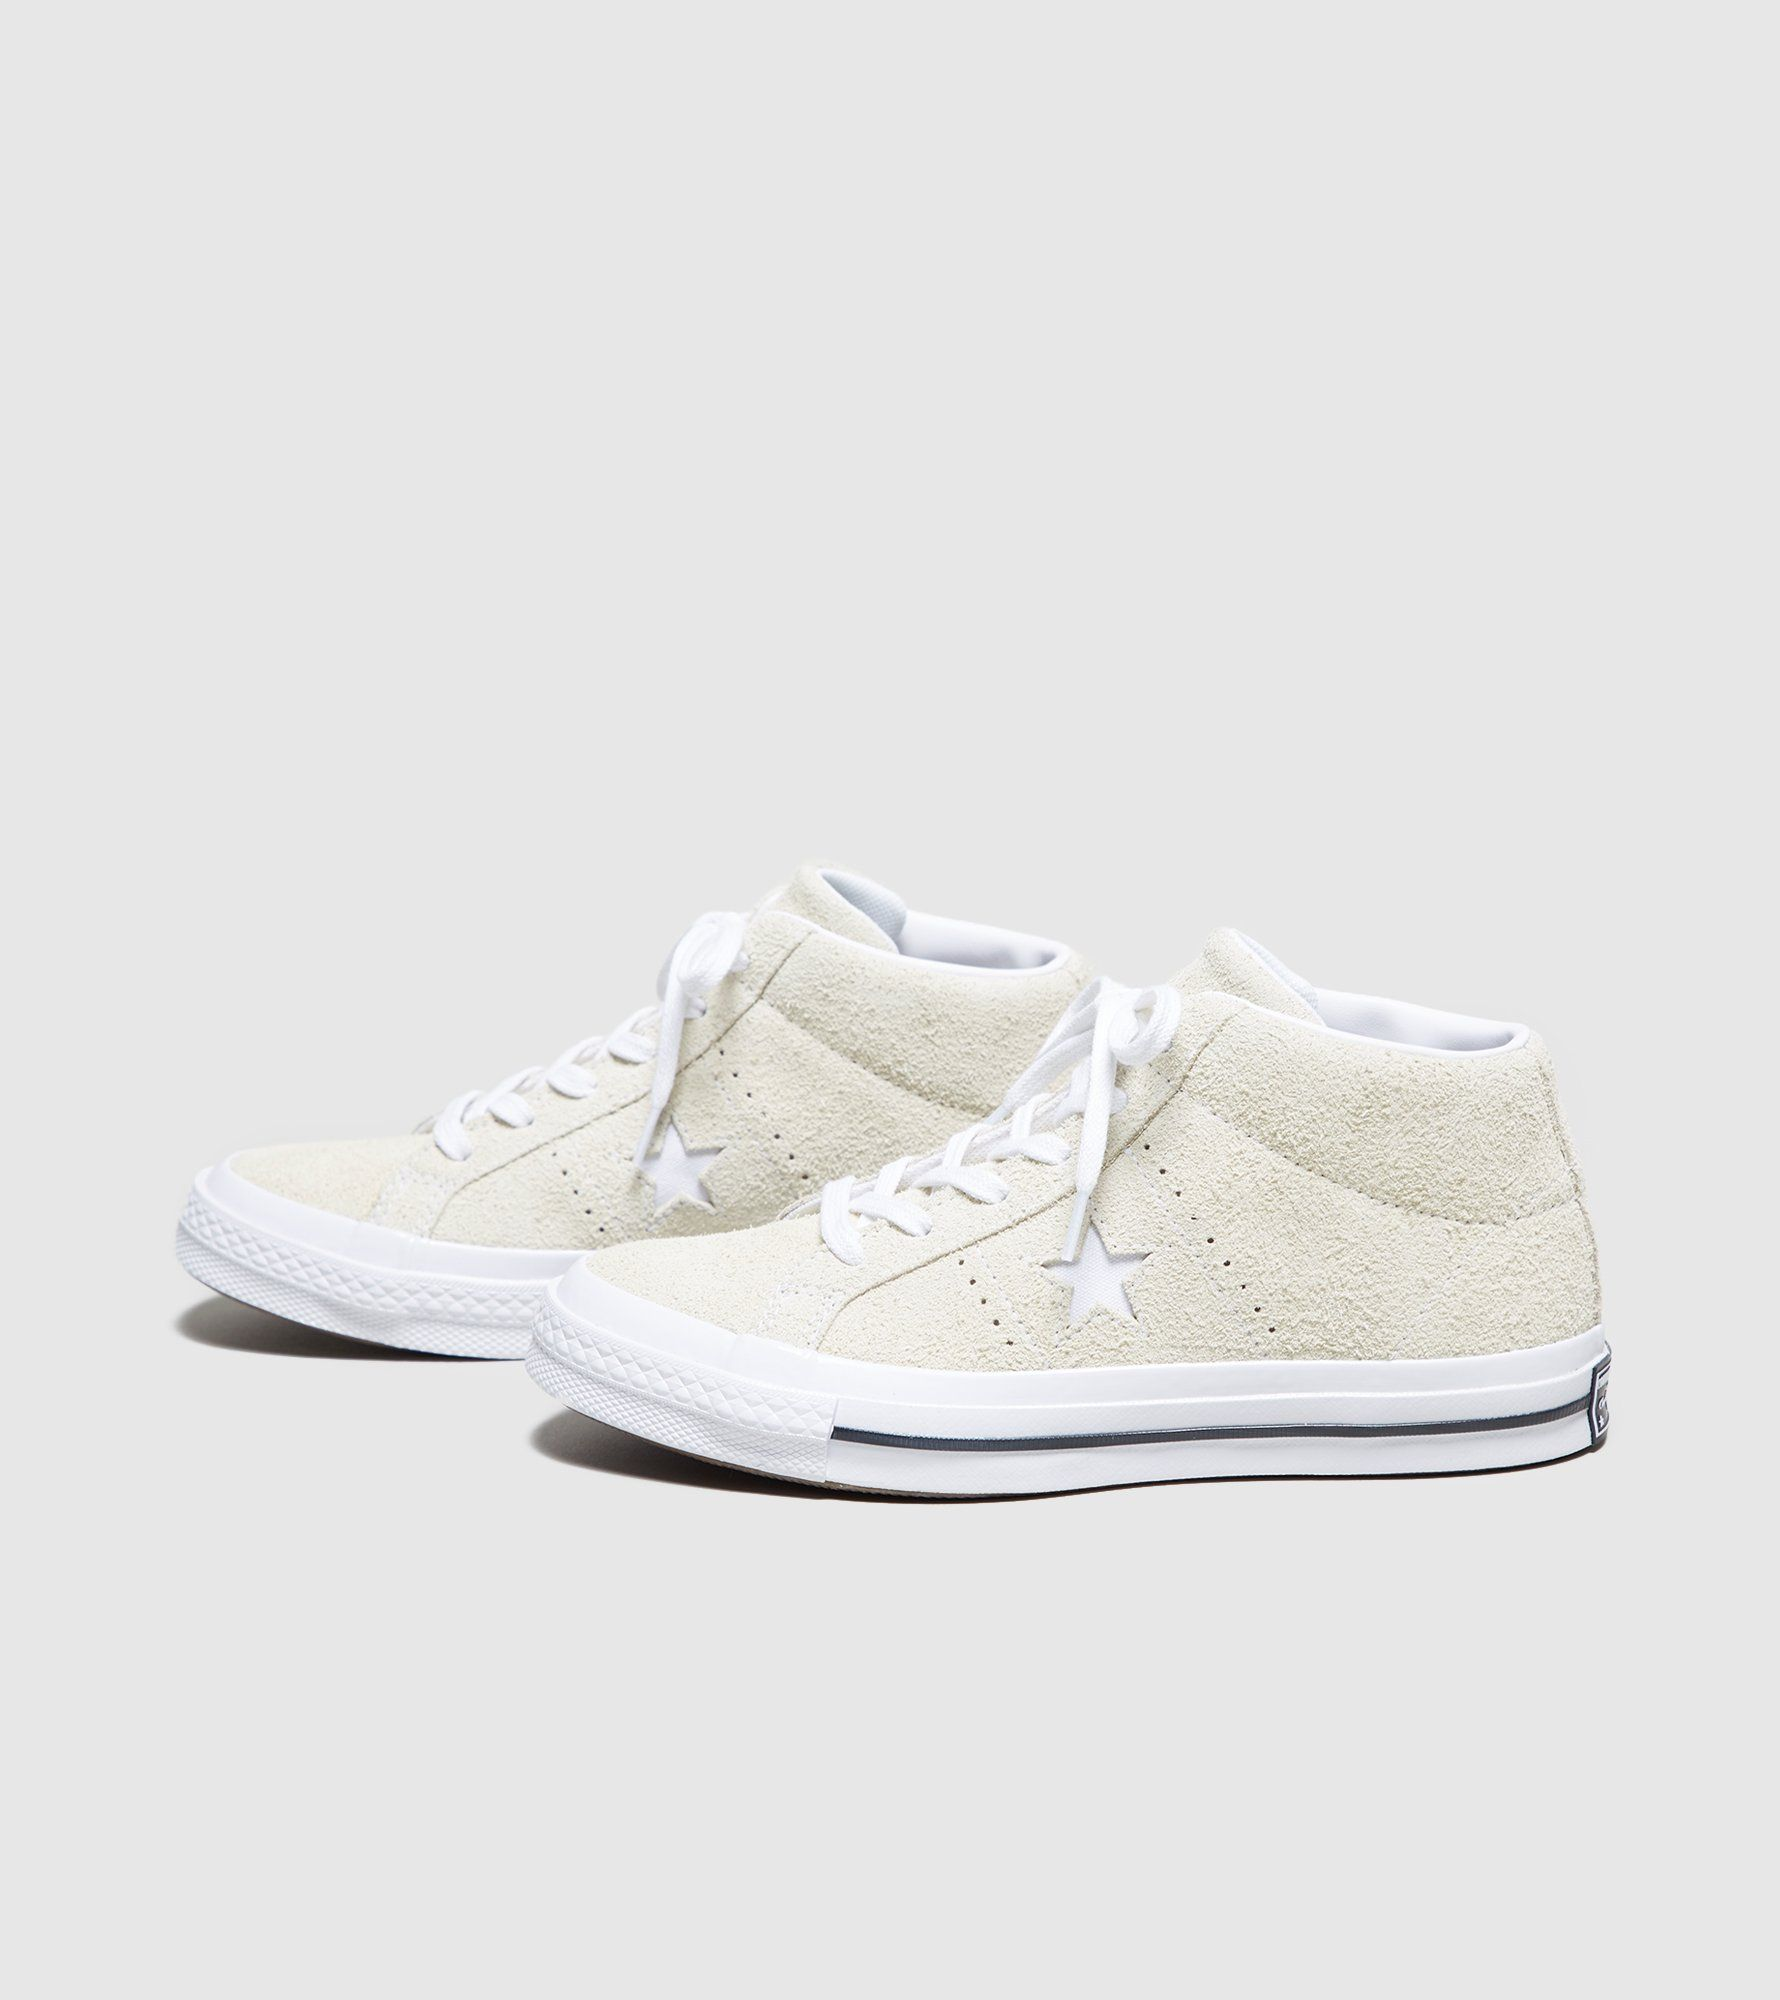 Converse One Star Cotton Candy Women's